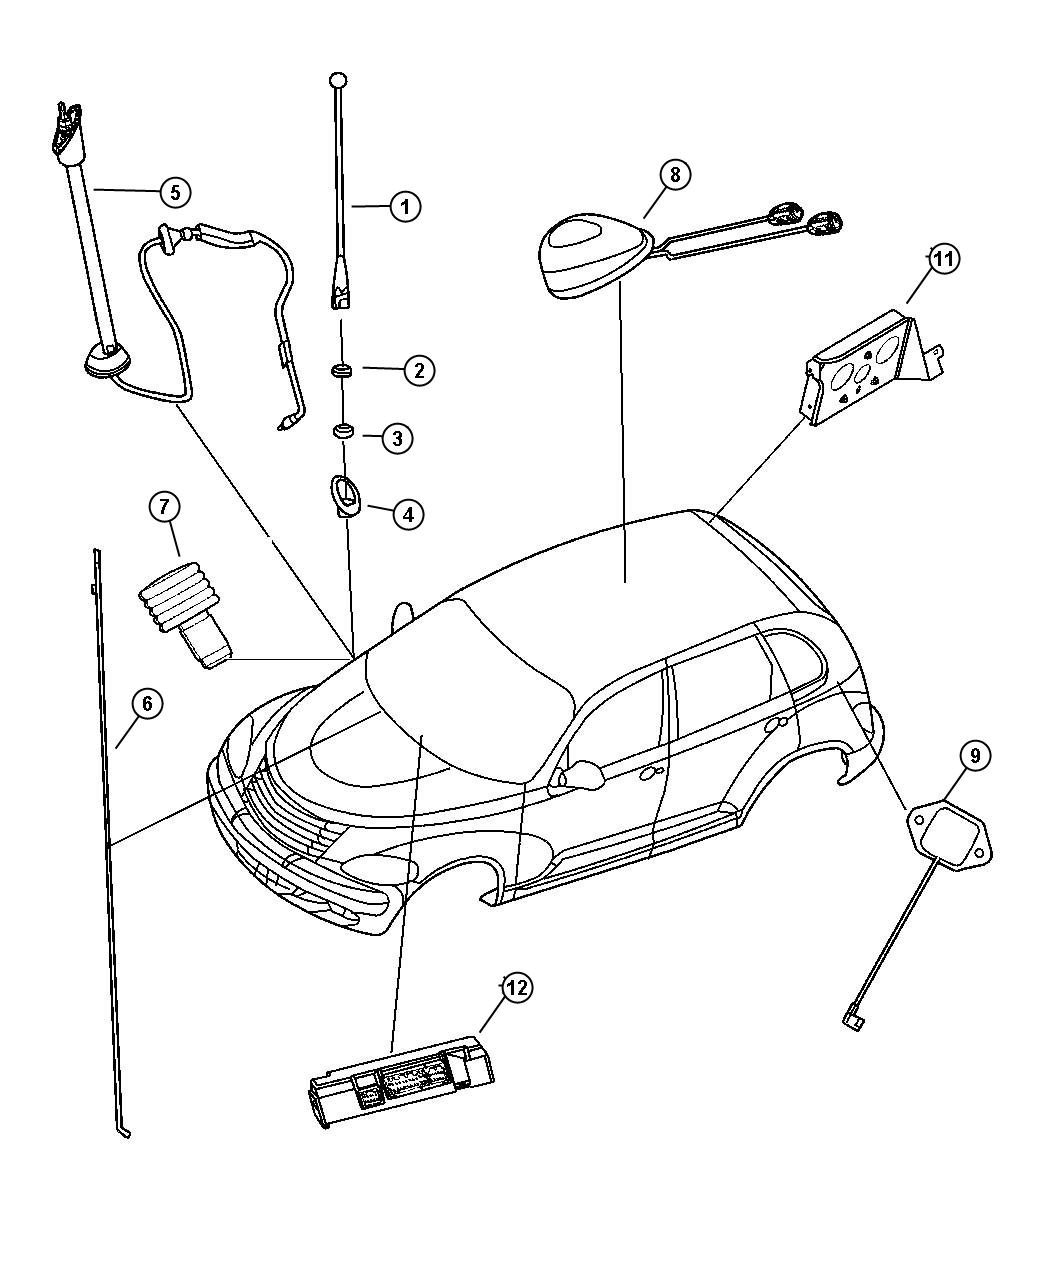 Dodge Neon Base Used For Body And Cable Antenna